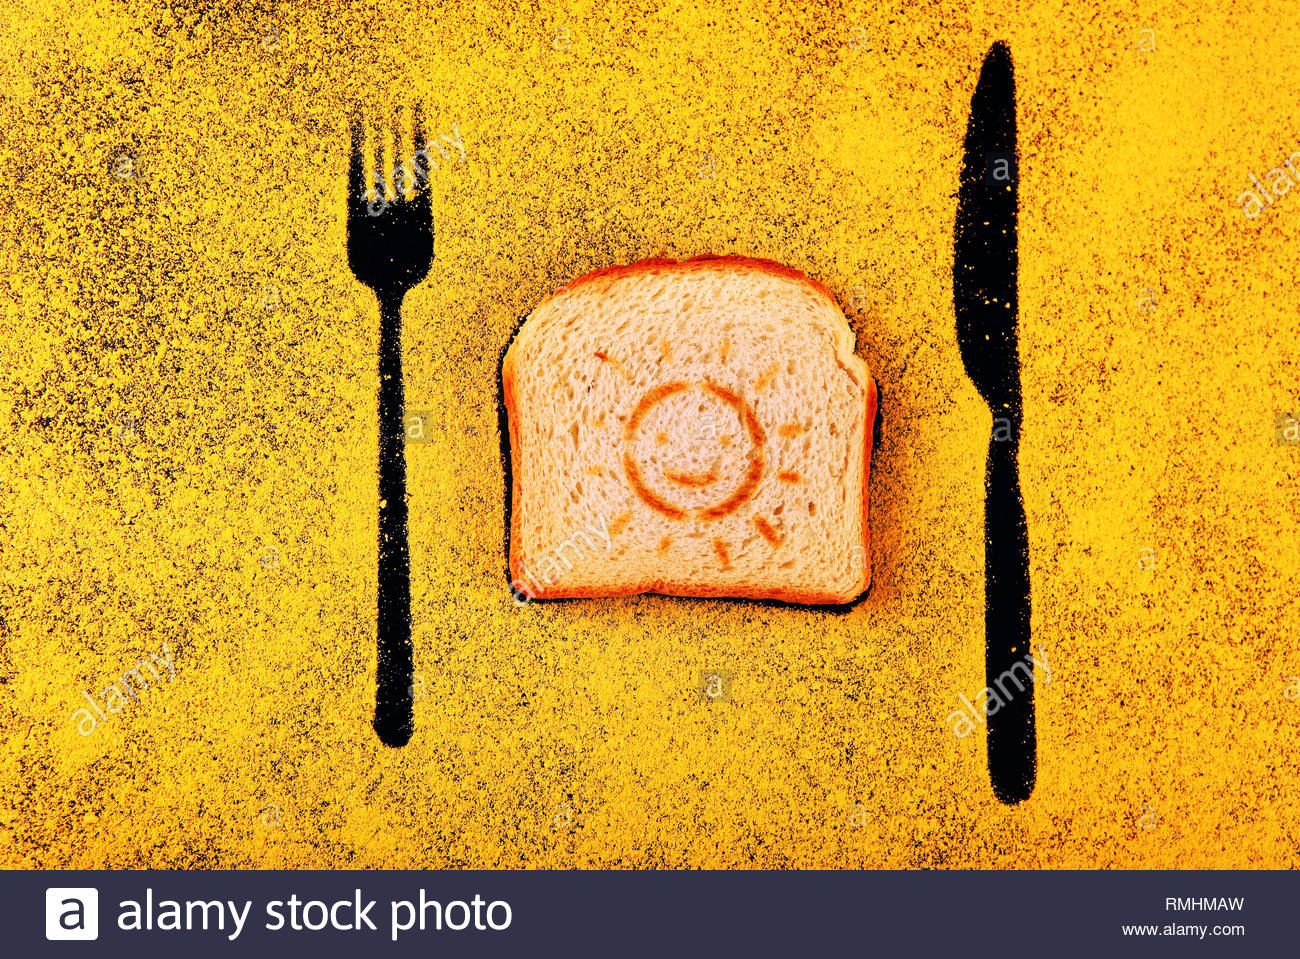 toast sun symbol fork knife shadow chalkboard yellow chalk - Stock Image